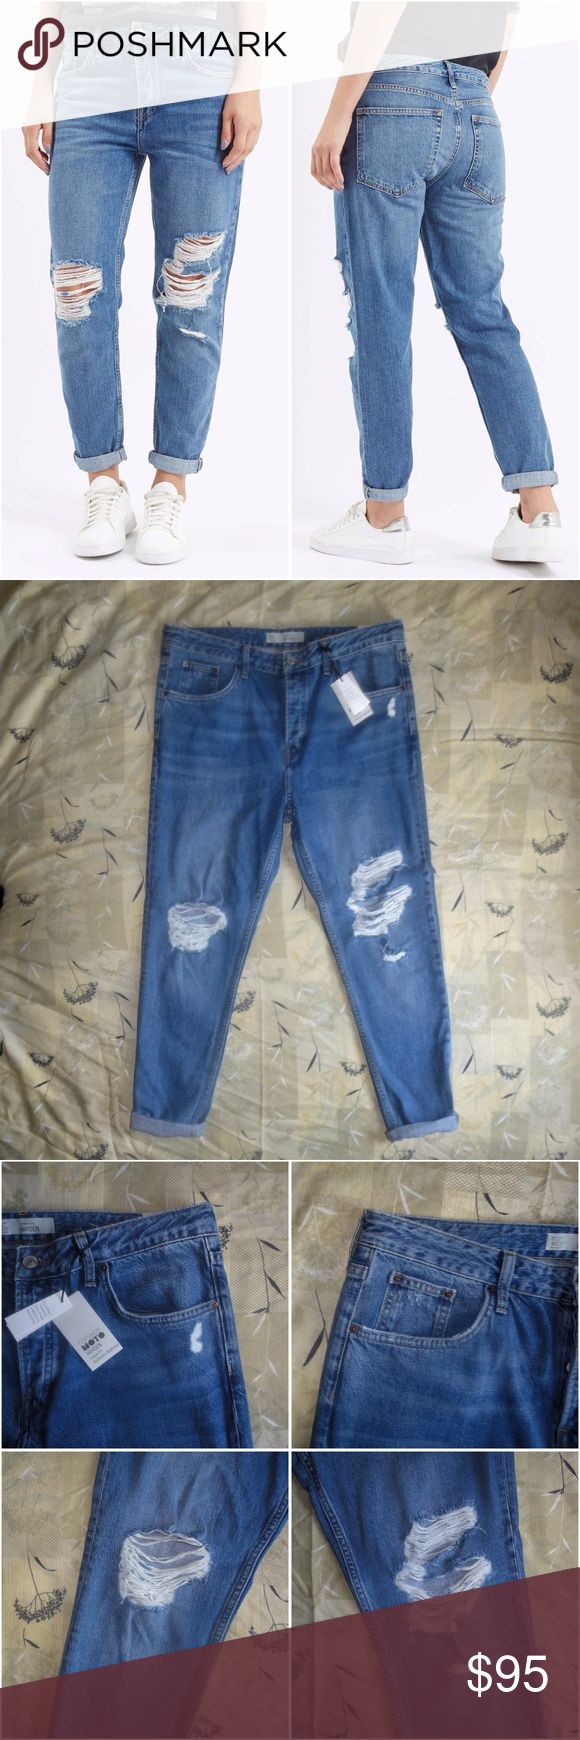 """🎉HP🎉 Topshop Blue Ripped Hayden Boyfriend Jeans Brand: Topshop Style: Hayden (Loose Fit Authentic Boyfriend) Size: 32x34 Color: Medium Blue Material: 60% Cotton, 40% Lyocell  Measurements:   Waist: 17.5"""" flat across, 35"""" around Rise: 11.5"""" Inseam (uncuffed): 28.5"""" Inseam (cuffed twice): 26.5"""" Leg Opening: 6""""  These jeans are brand new with tags and are a beauty. They are a boyfriend fit and feature distressing along the legs. They have a button fly closure (no zip) as well as five pockets…"""